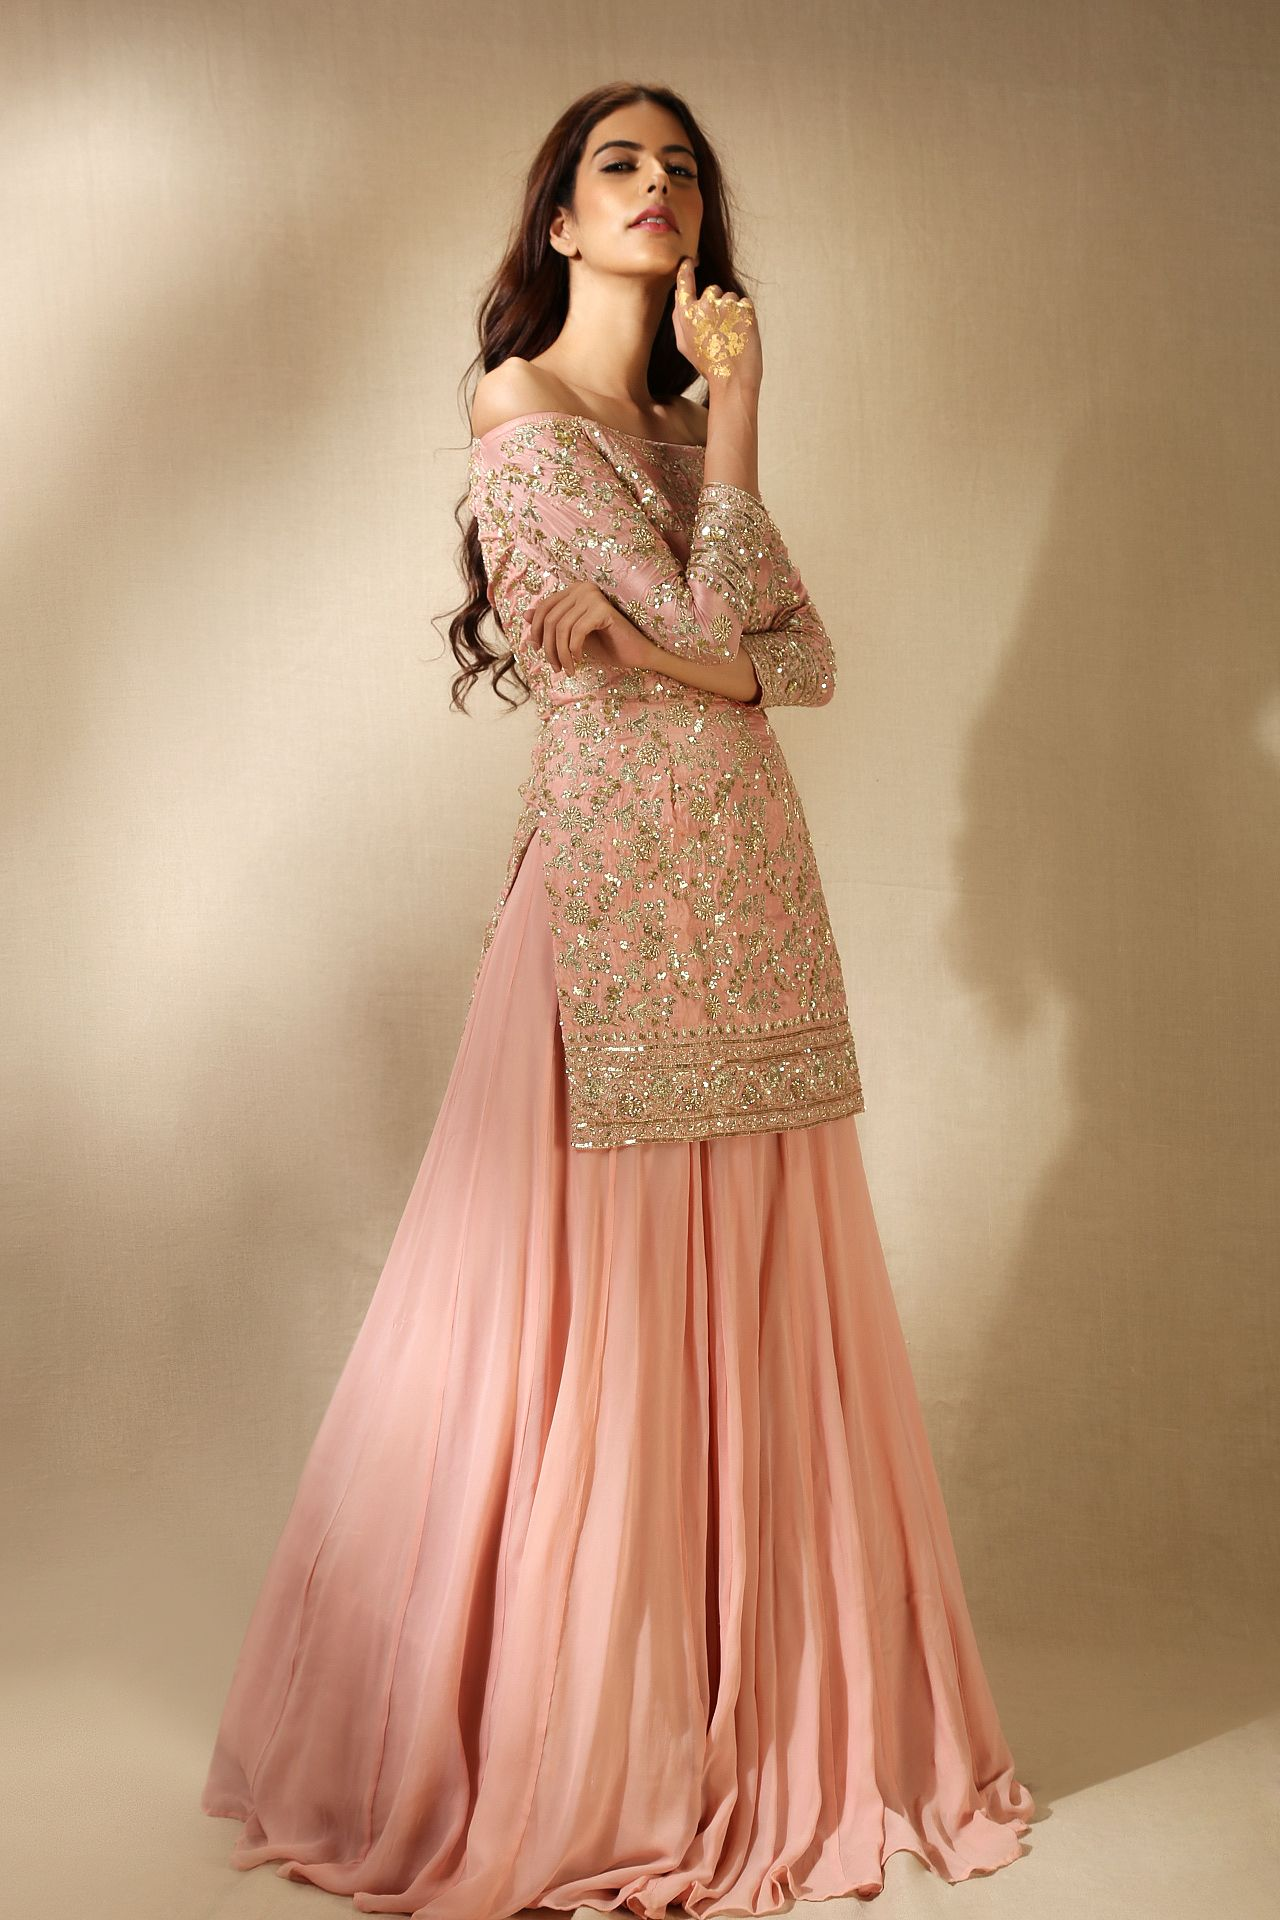 Astha narang campaign pinterest blouse designs for Sharara dress for wedding online shopping